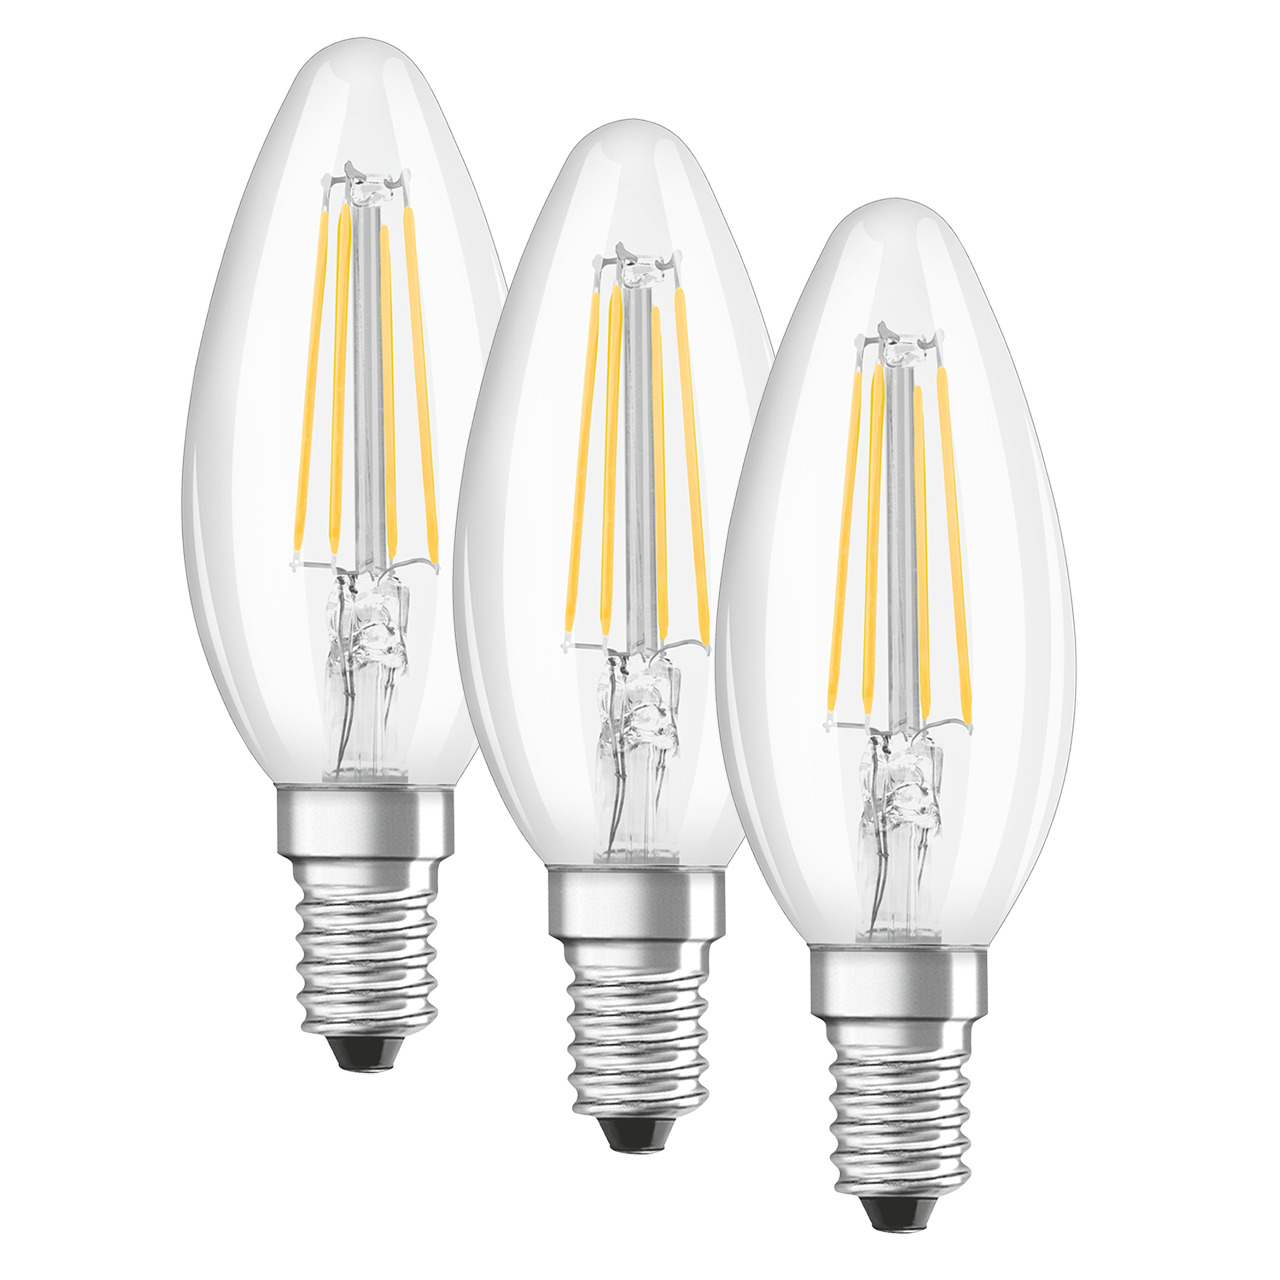 OSRAM LED PROMO 3er Set 4-W-Filament-LED-Kerzenlampe E14- warmweiss- klar